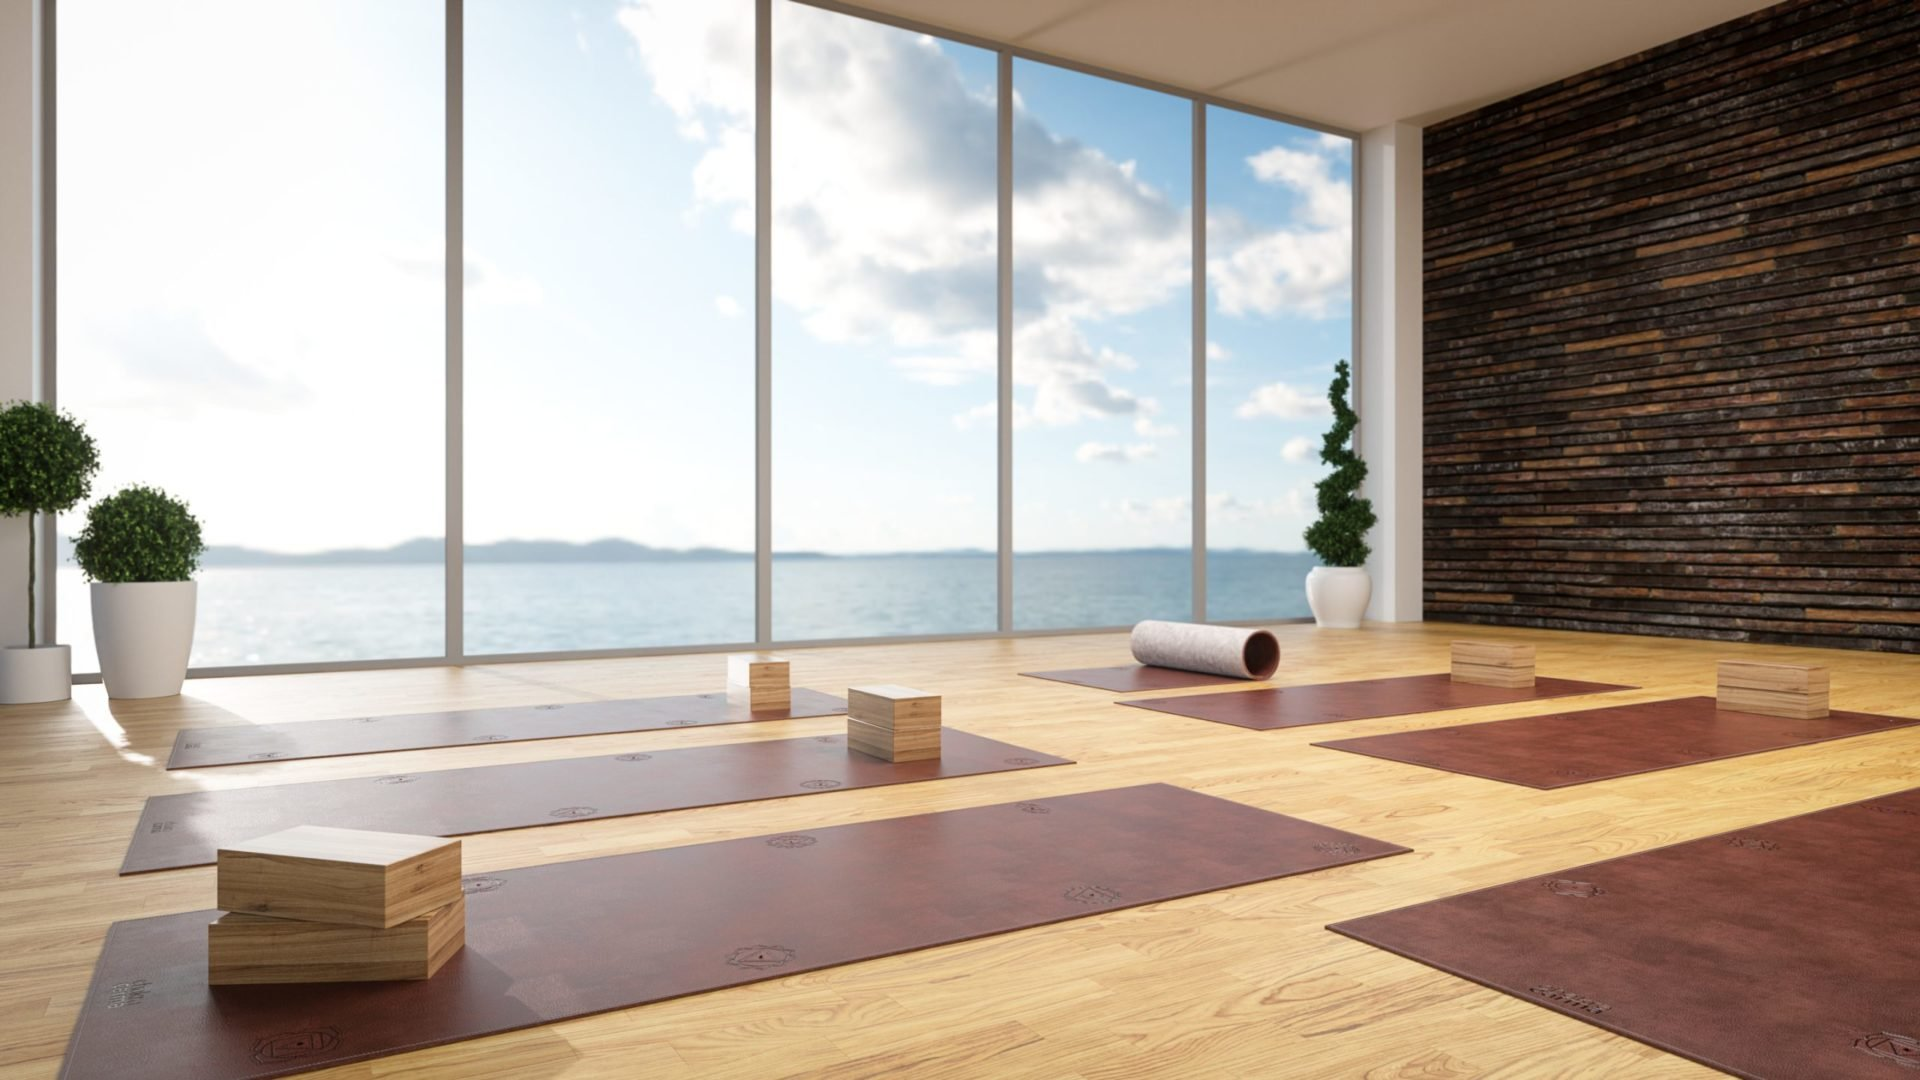 At $100,000 this is the world's most expensive yoga mat